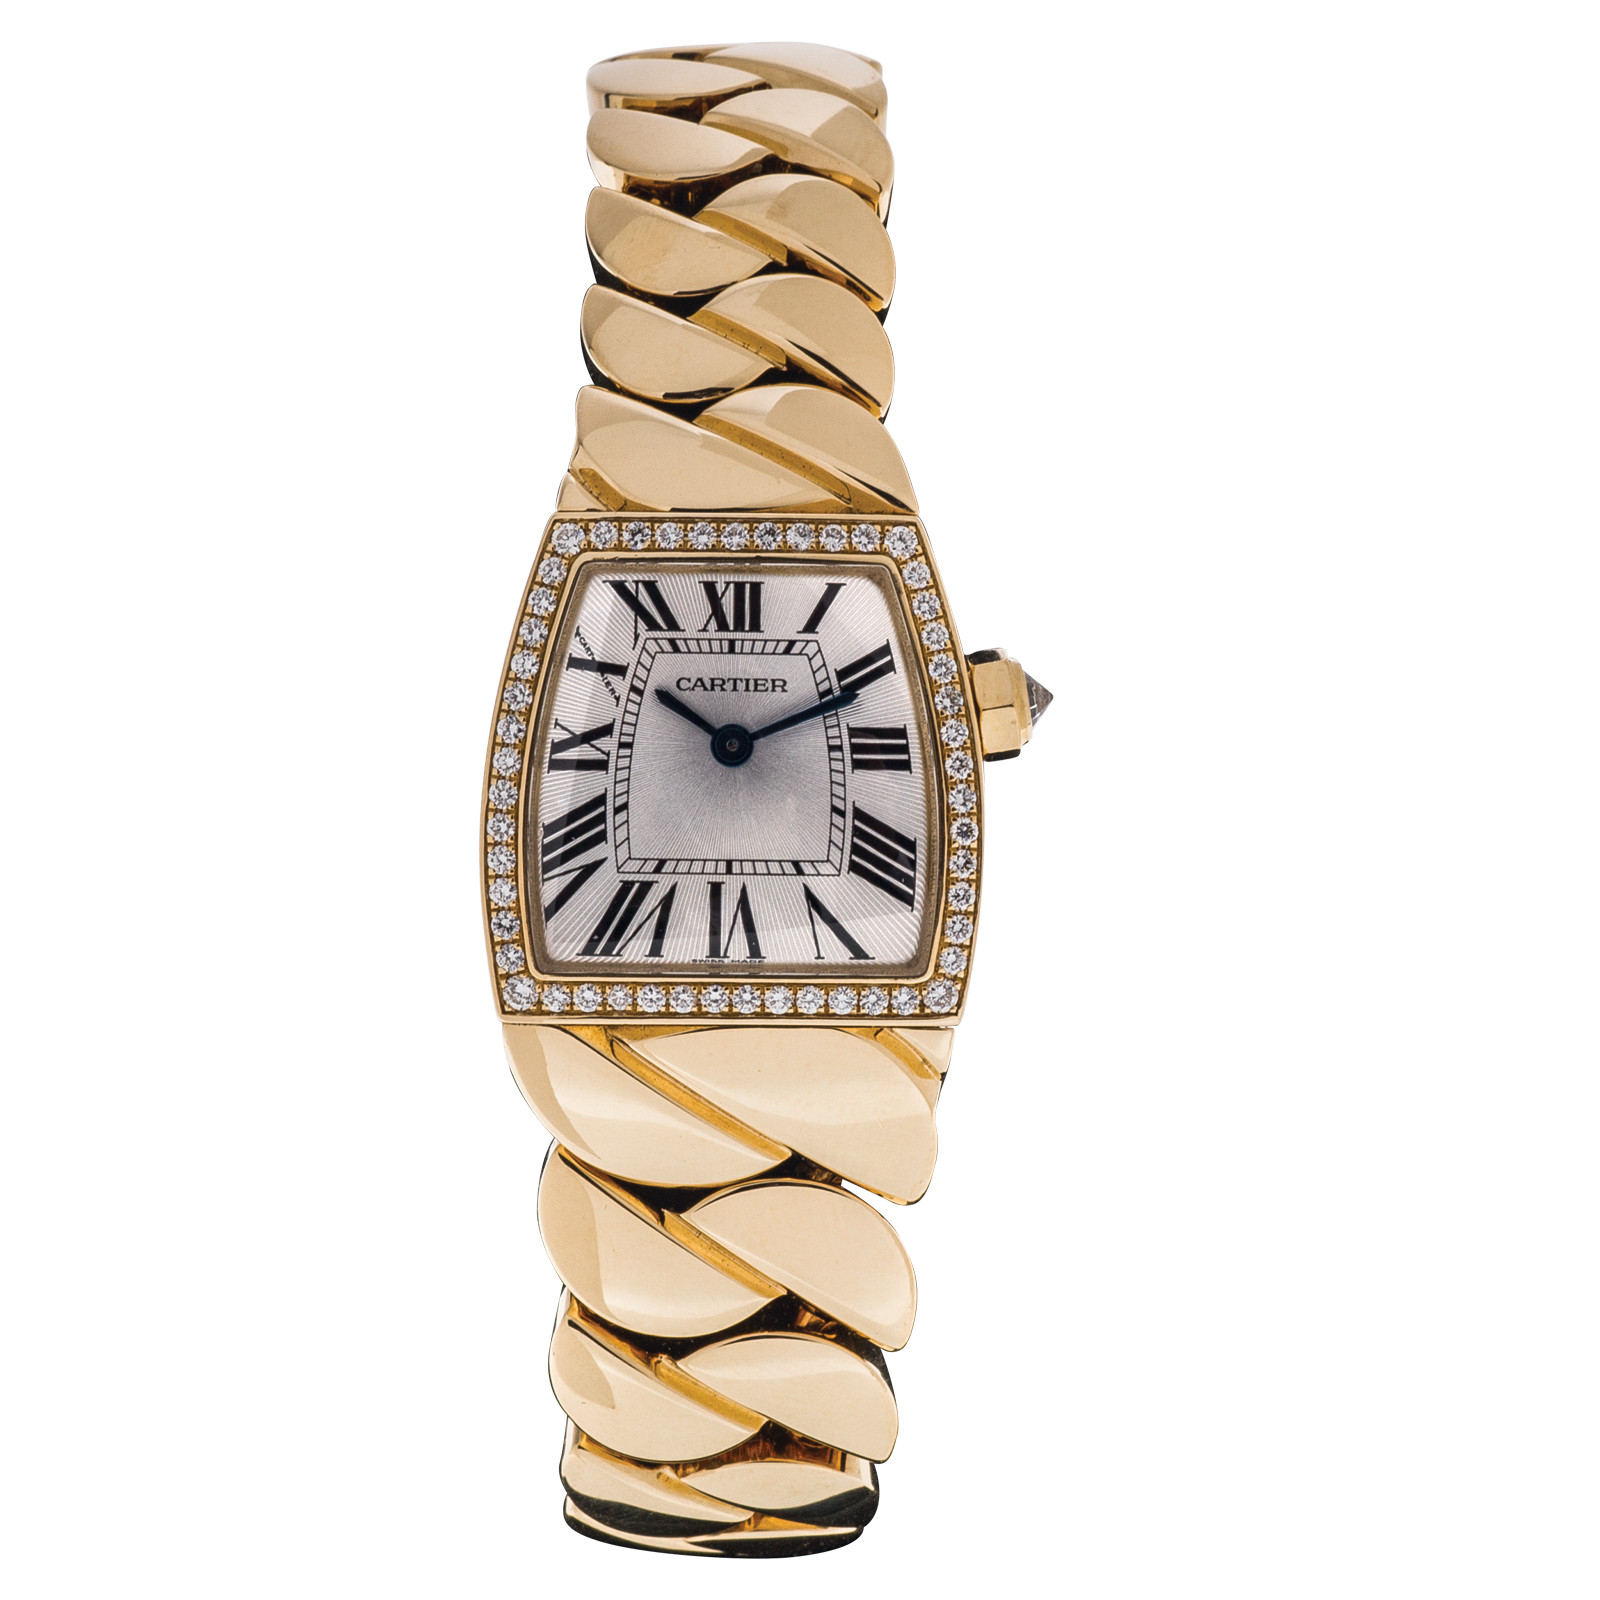 Preowned Cartier La Donna with Diamond Bezel